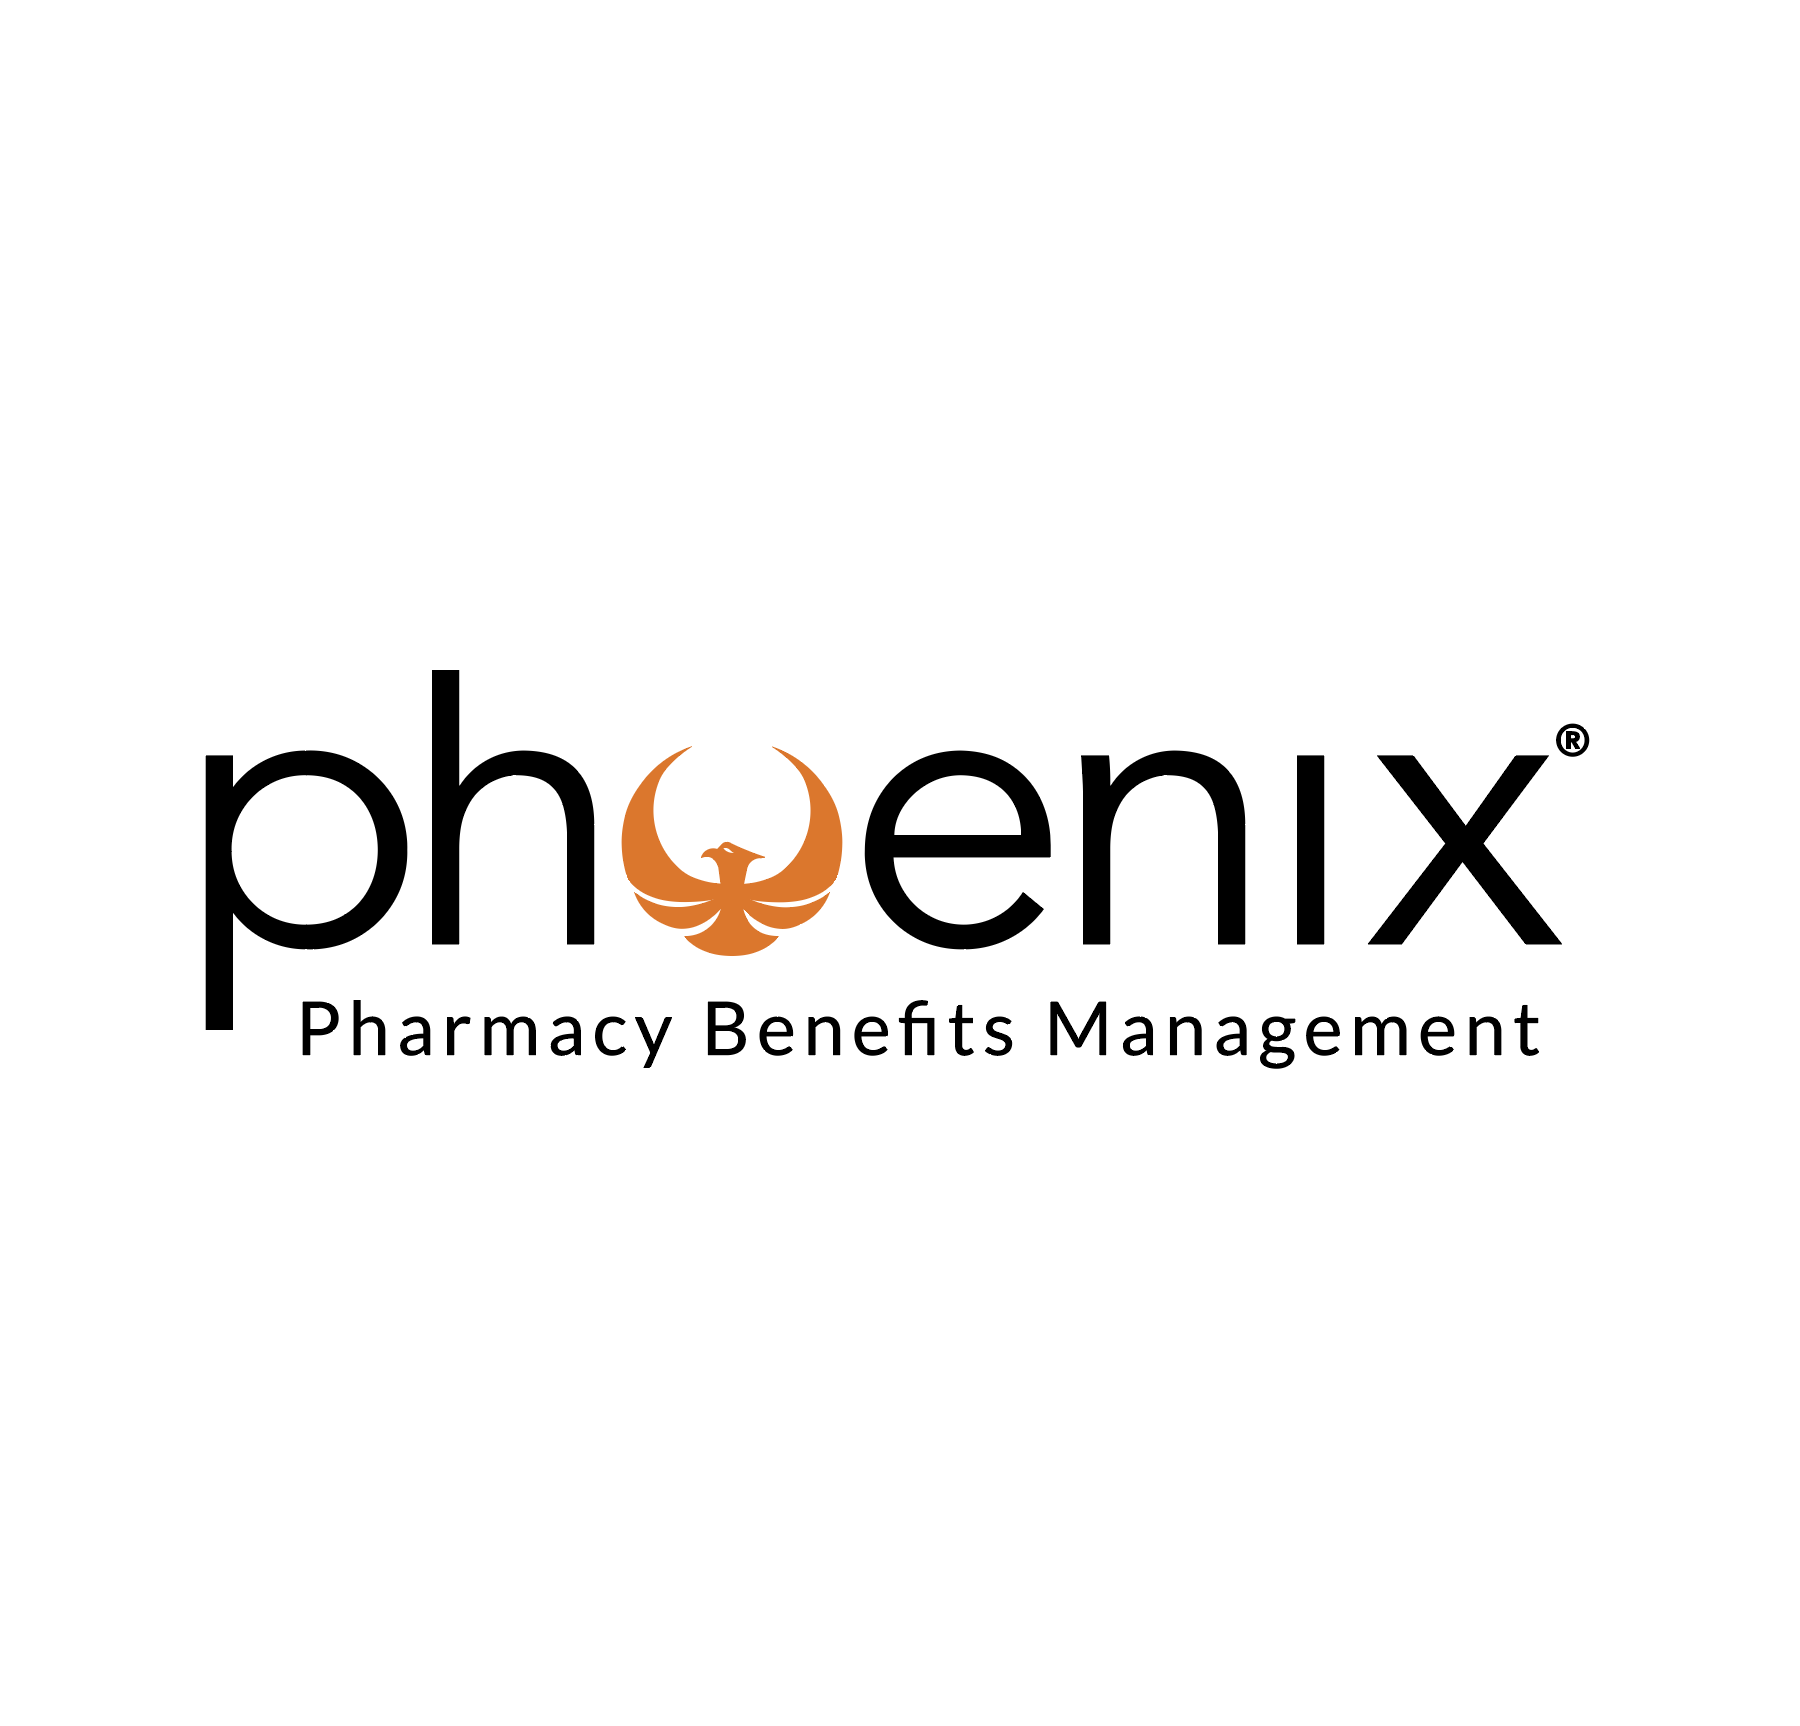 Phoenix Benefits Management